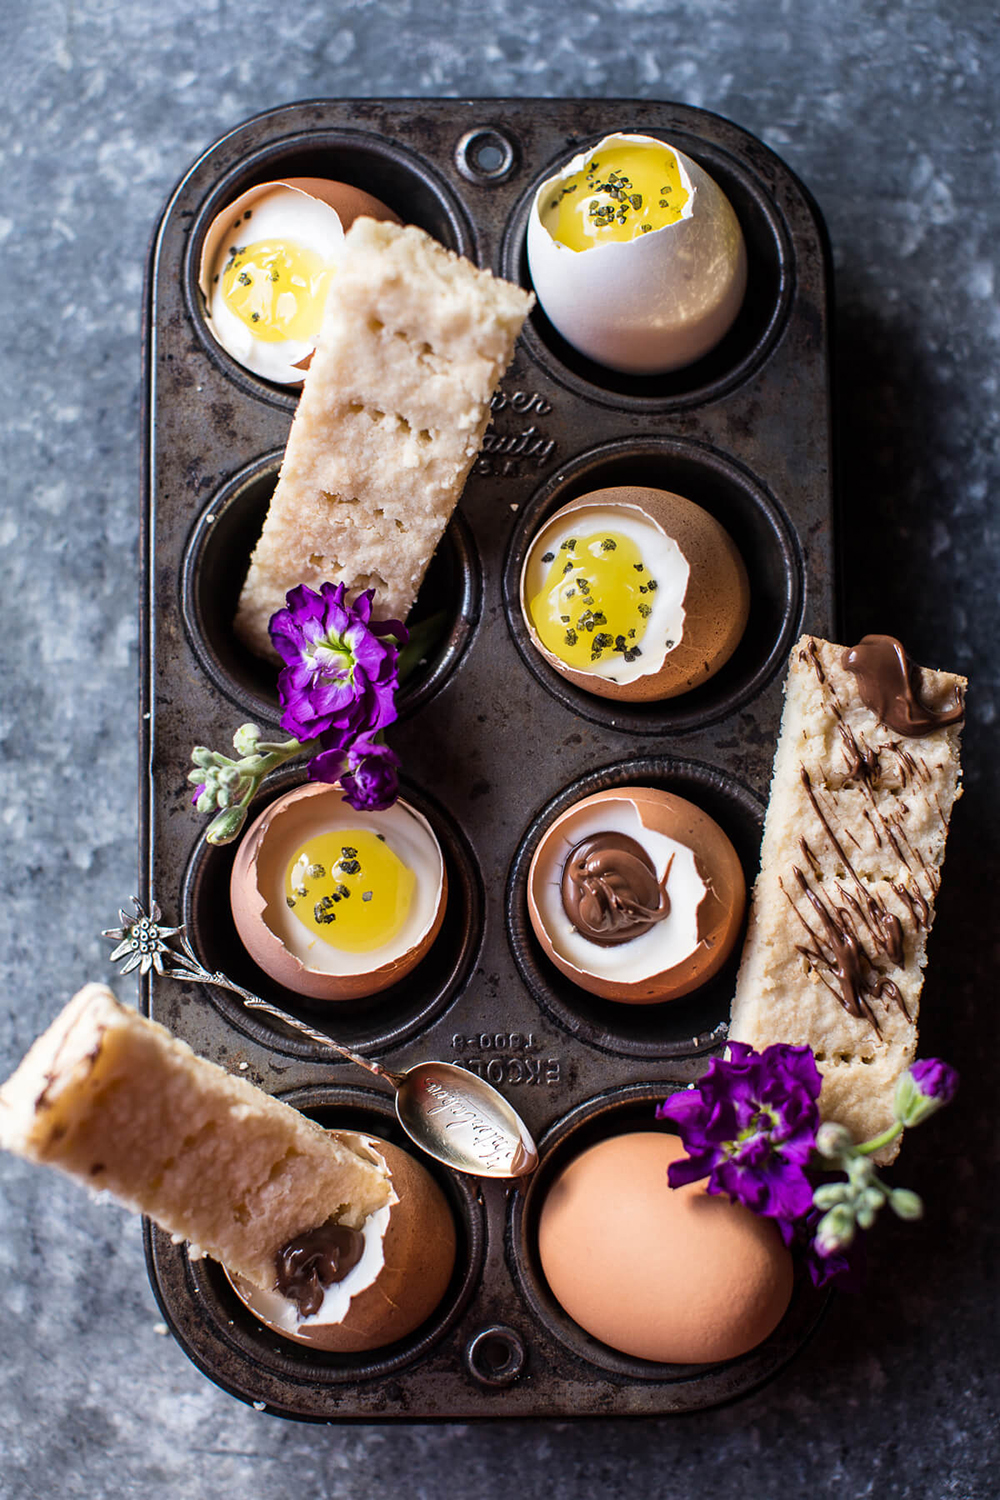 Cheesecake Eggs with Shortbread Soldiers | Half Baked Harvest - Pinterest Picks - 10 Delightful Easter Desserts